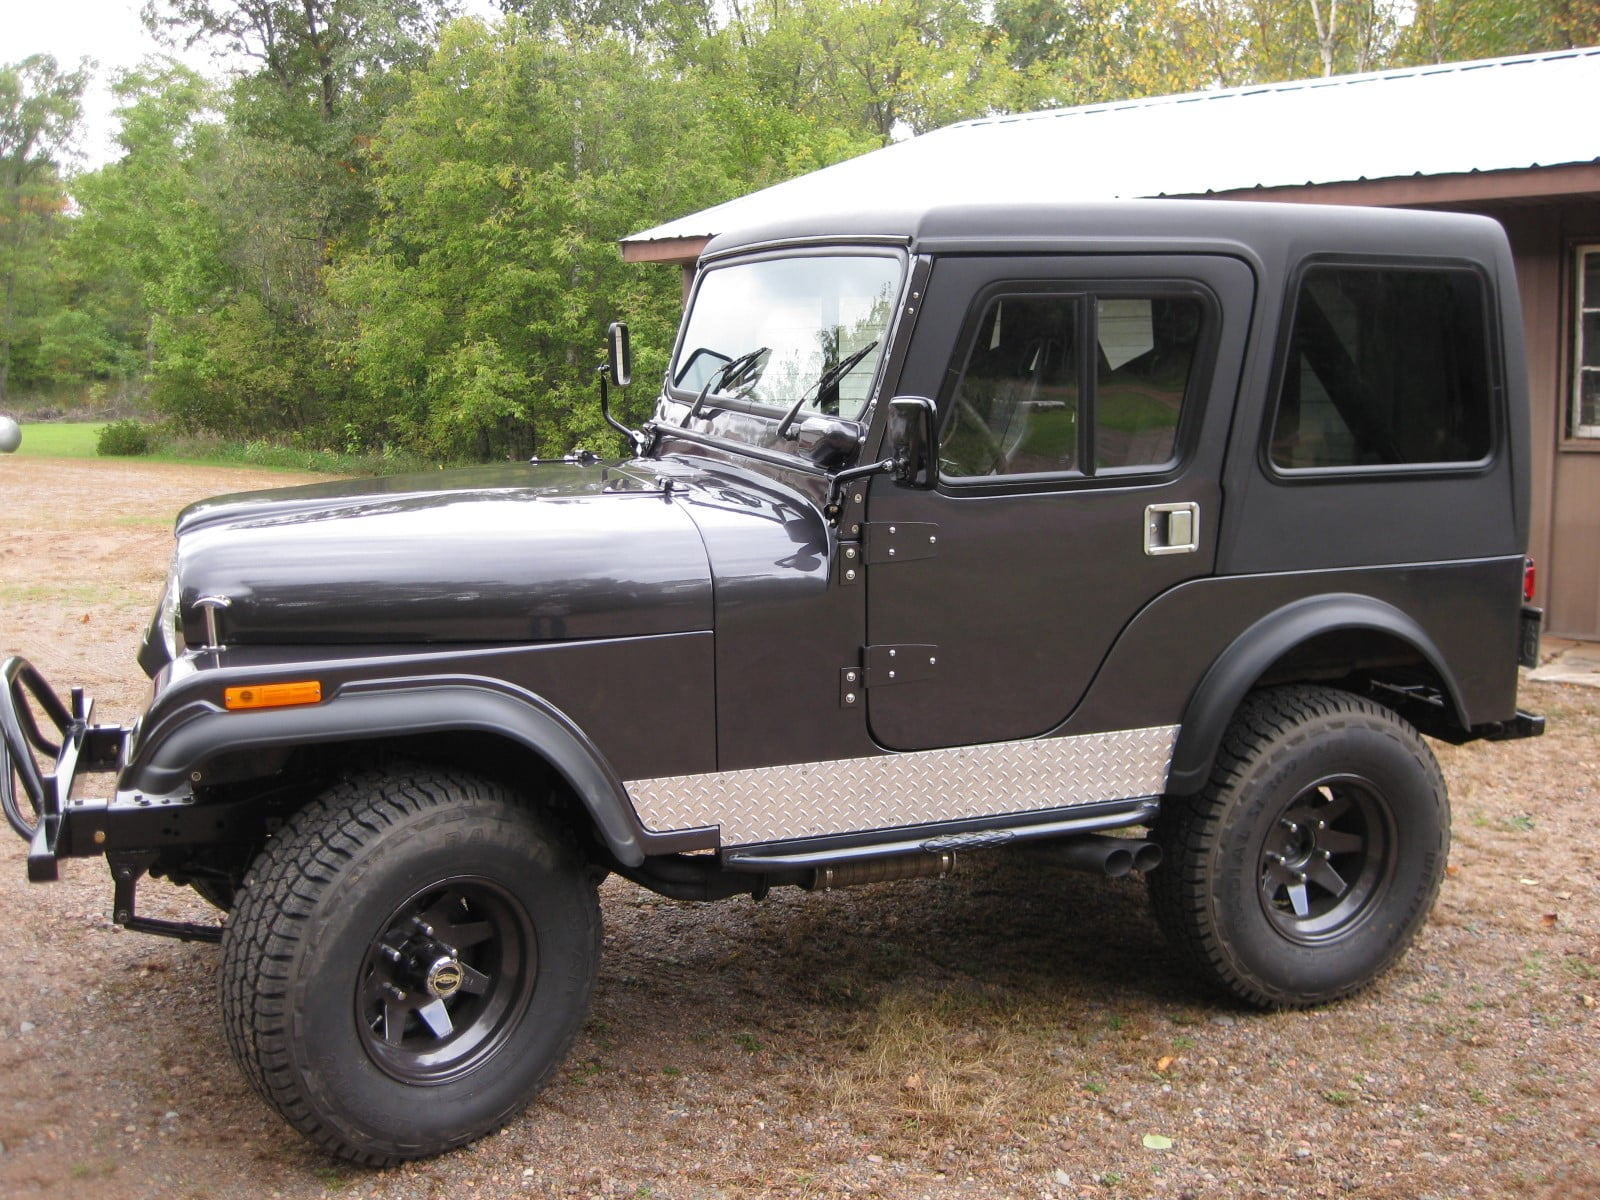 Our Cj5 Jeep Story